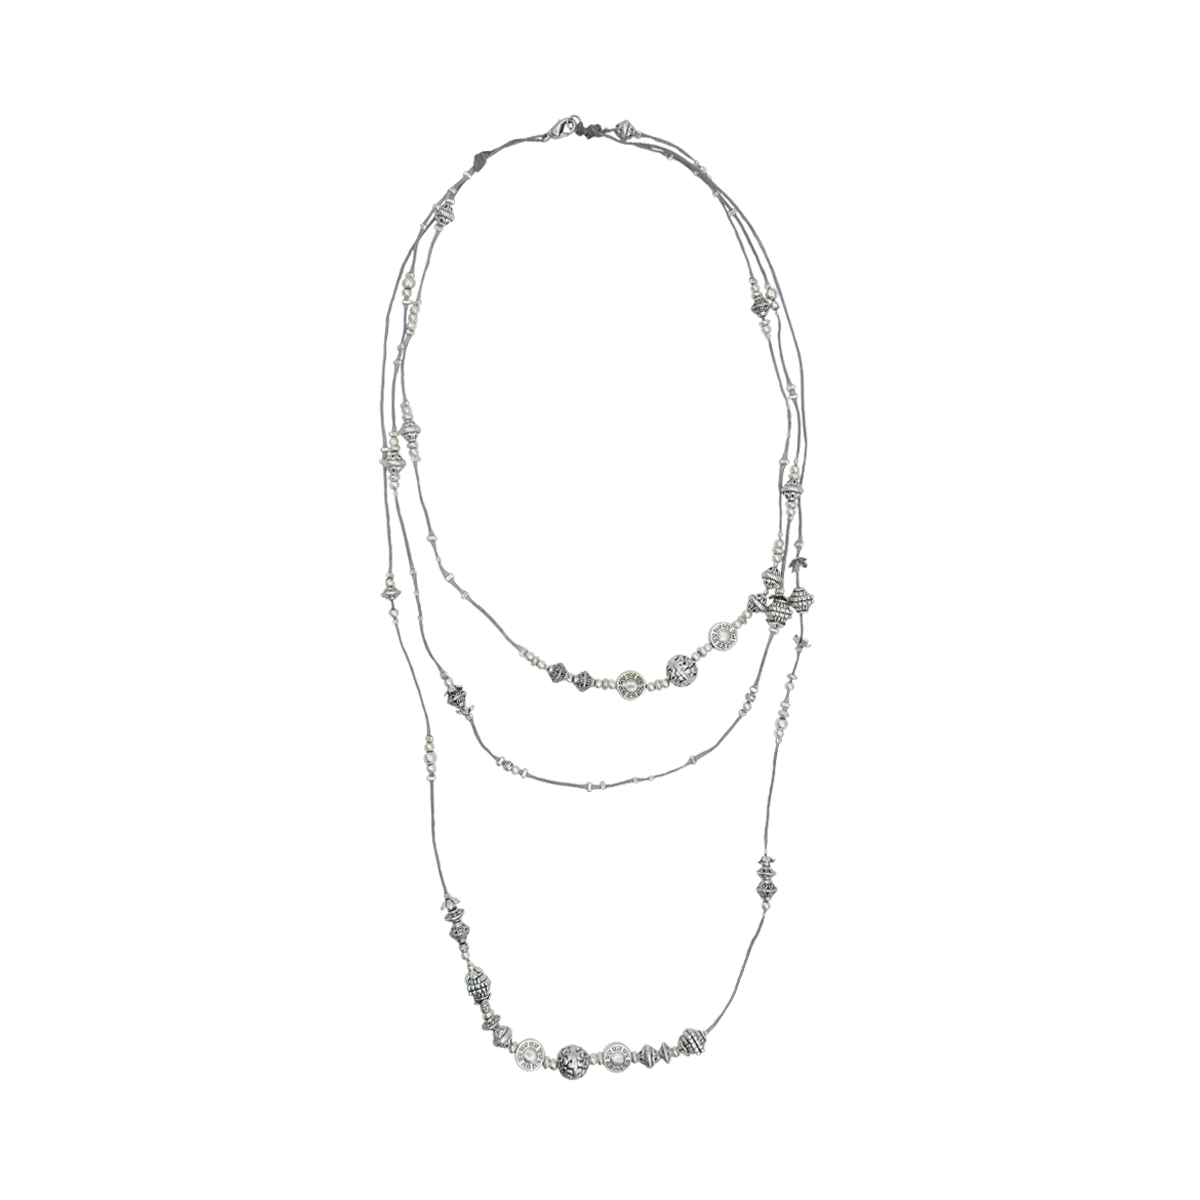 3-layer-necklace-with-different-sized-silver-beads.jpg